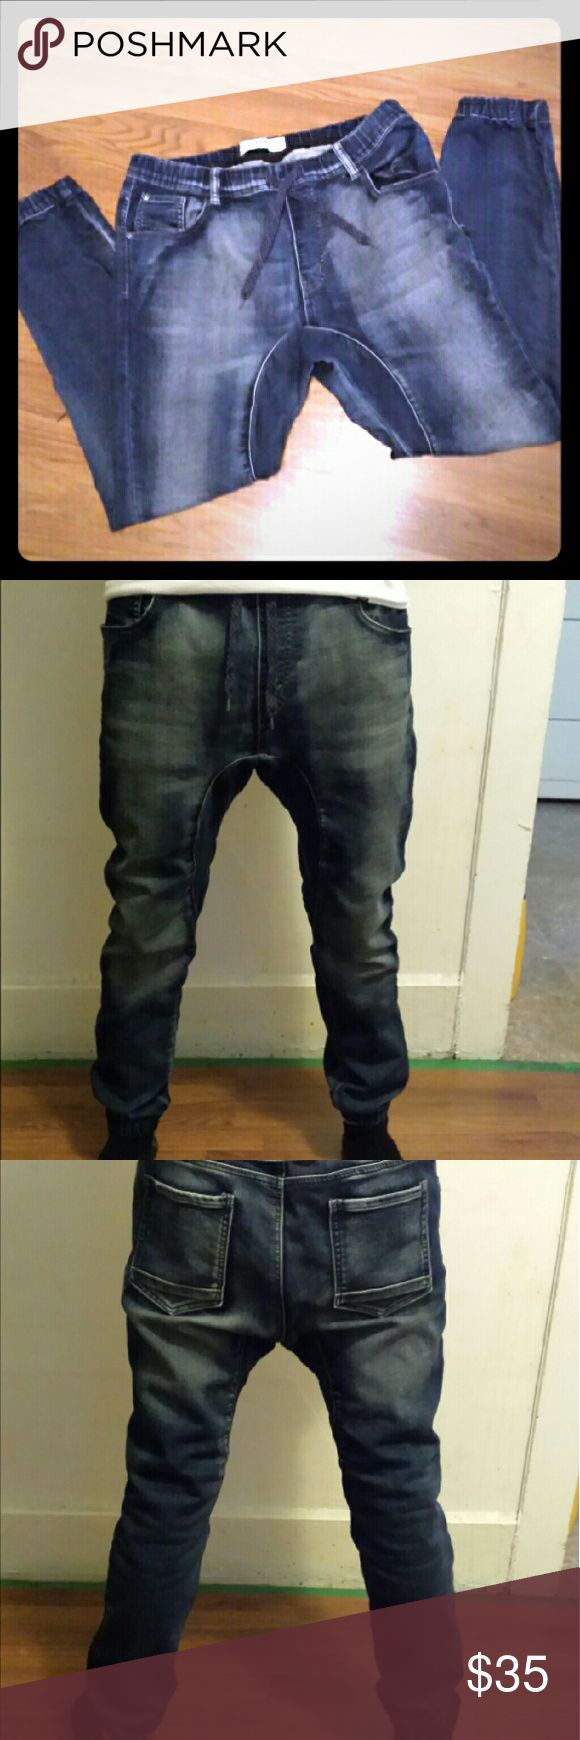 Mens Biker Style Denim Joggers size 32w Medium Mens Biker style joggers Made by Designer brand Track denim.  Excellent condition. Zero holes, tears or stains practically new still. Size 32/Medium mens Bundle and save! Ships within 24 hrs track denim Pants Sweatpants & Joggers